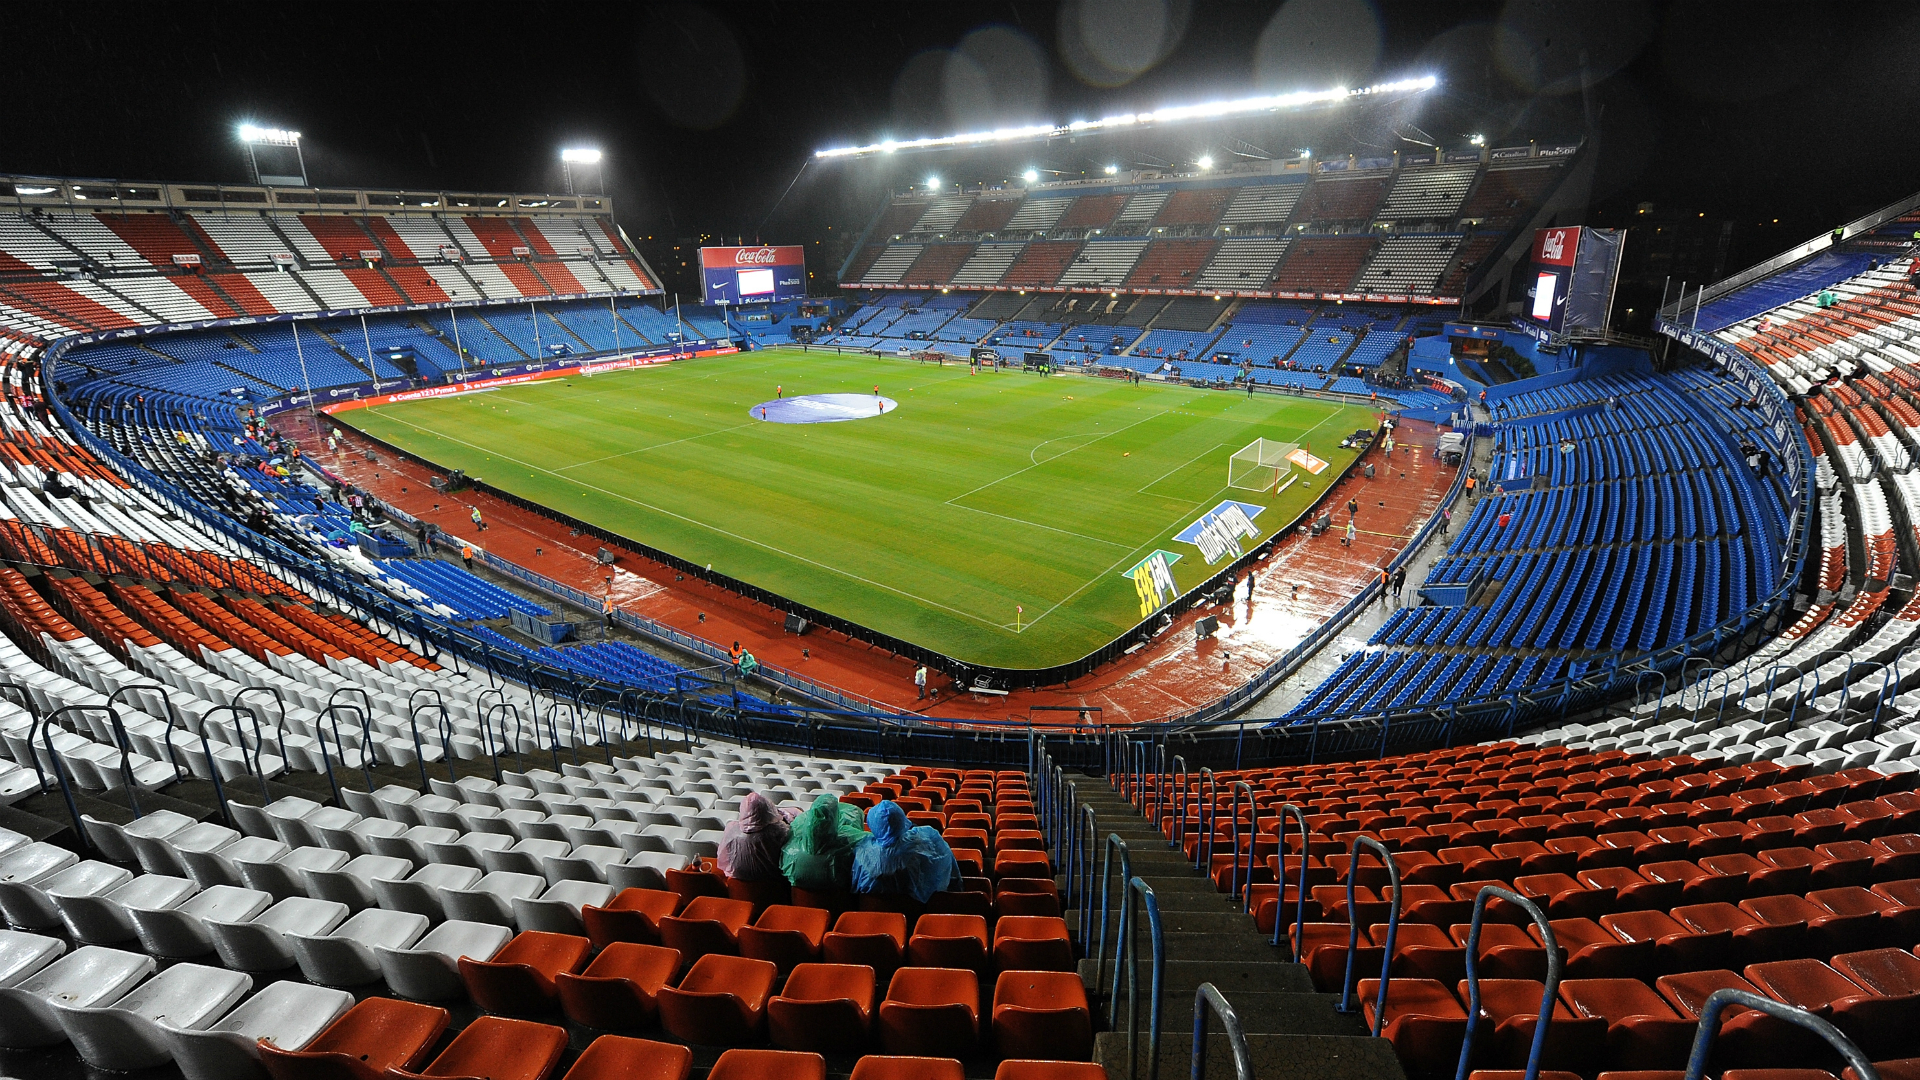 https://images.performgroup.com/di/library/goal_es/3c/f6/vicente-calderon_57miao175xft1582c50am7oms.jpg